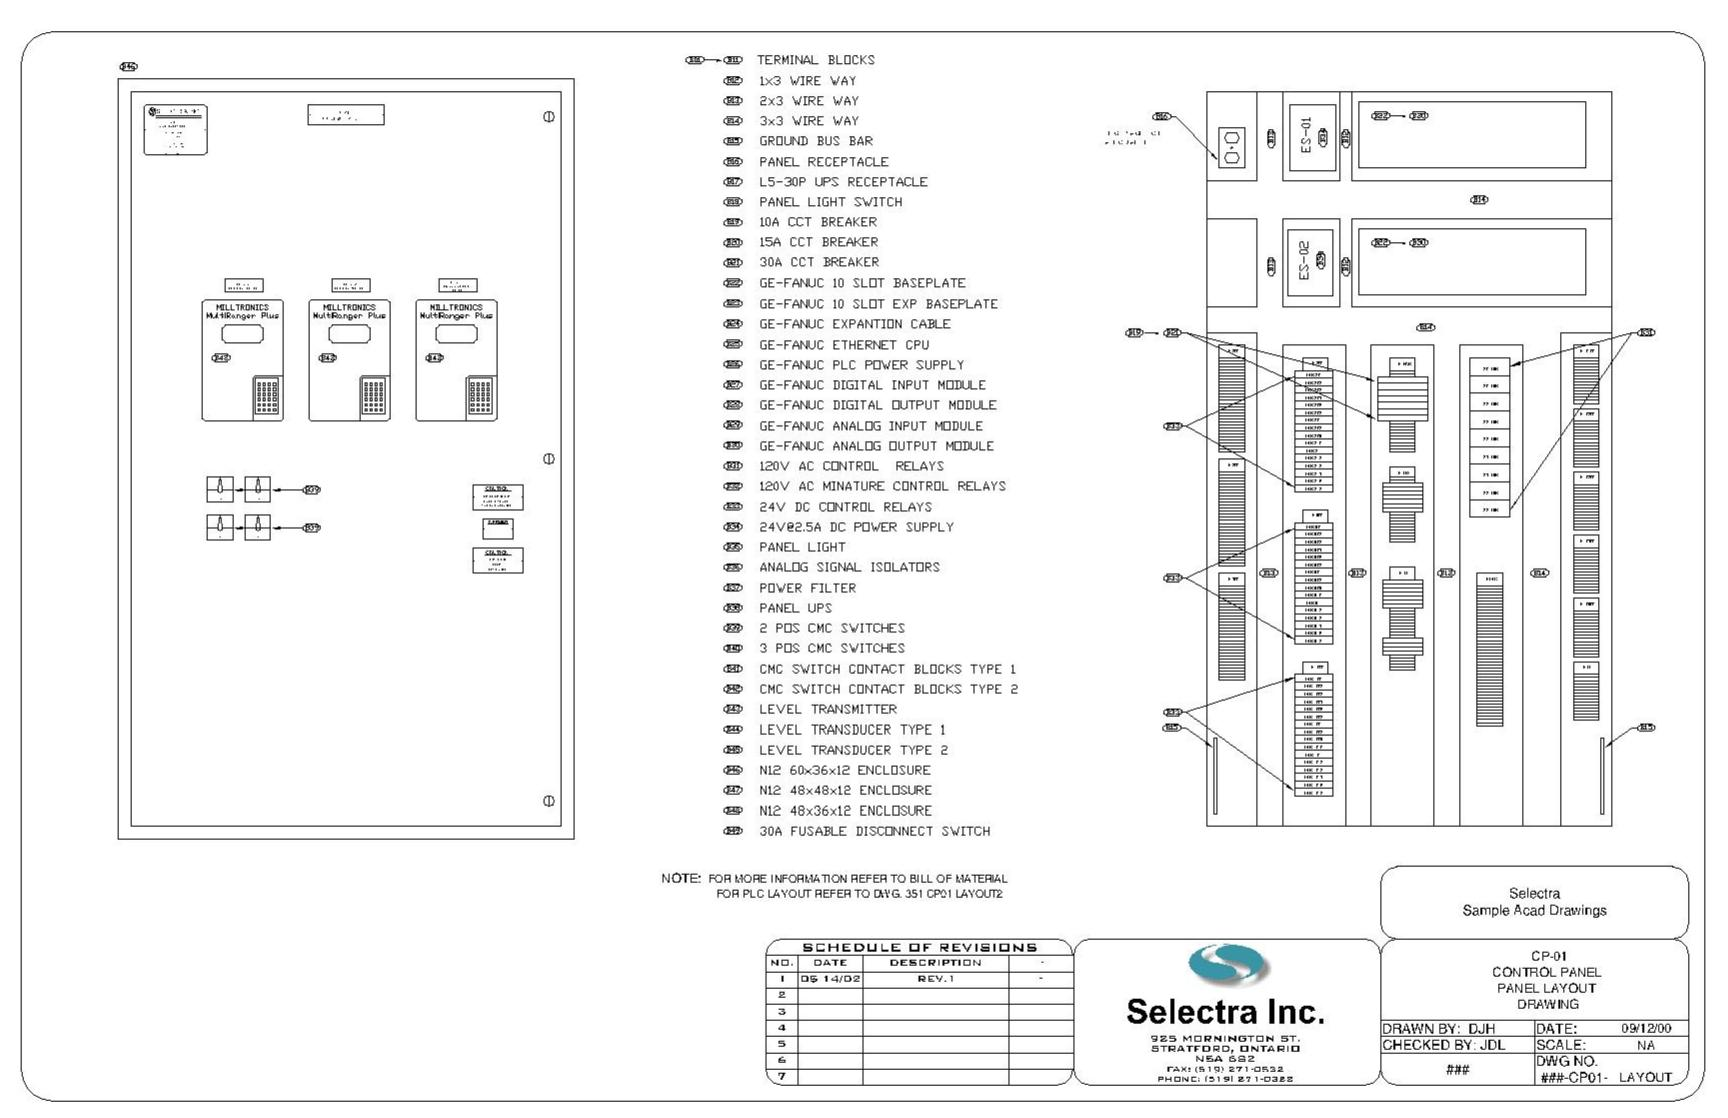 Plc Panel Wiring, Plc, Get Free Image About Wiring Diagram